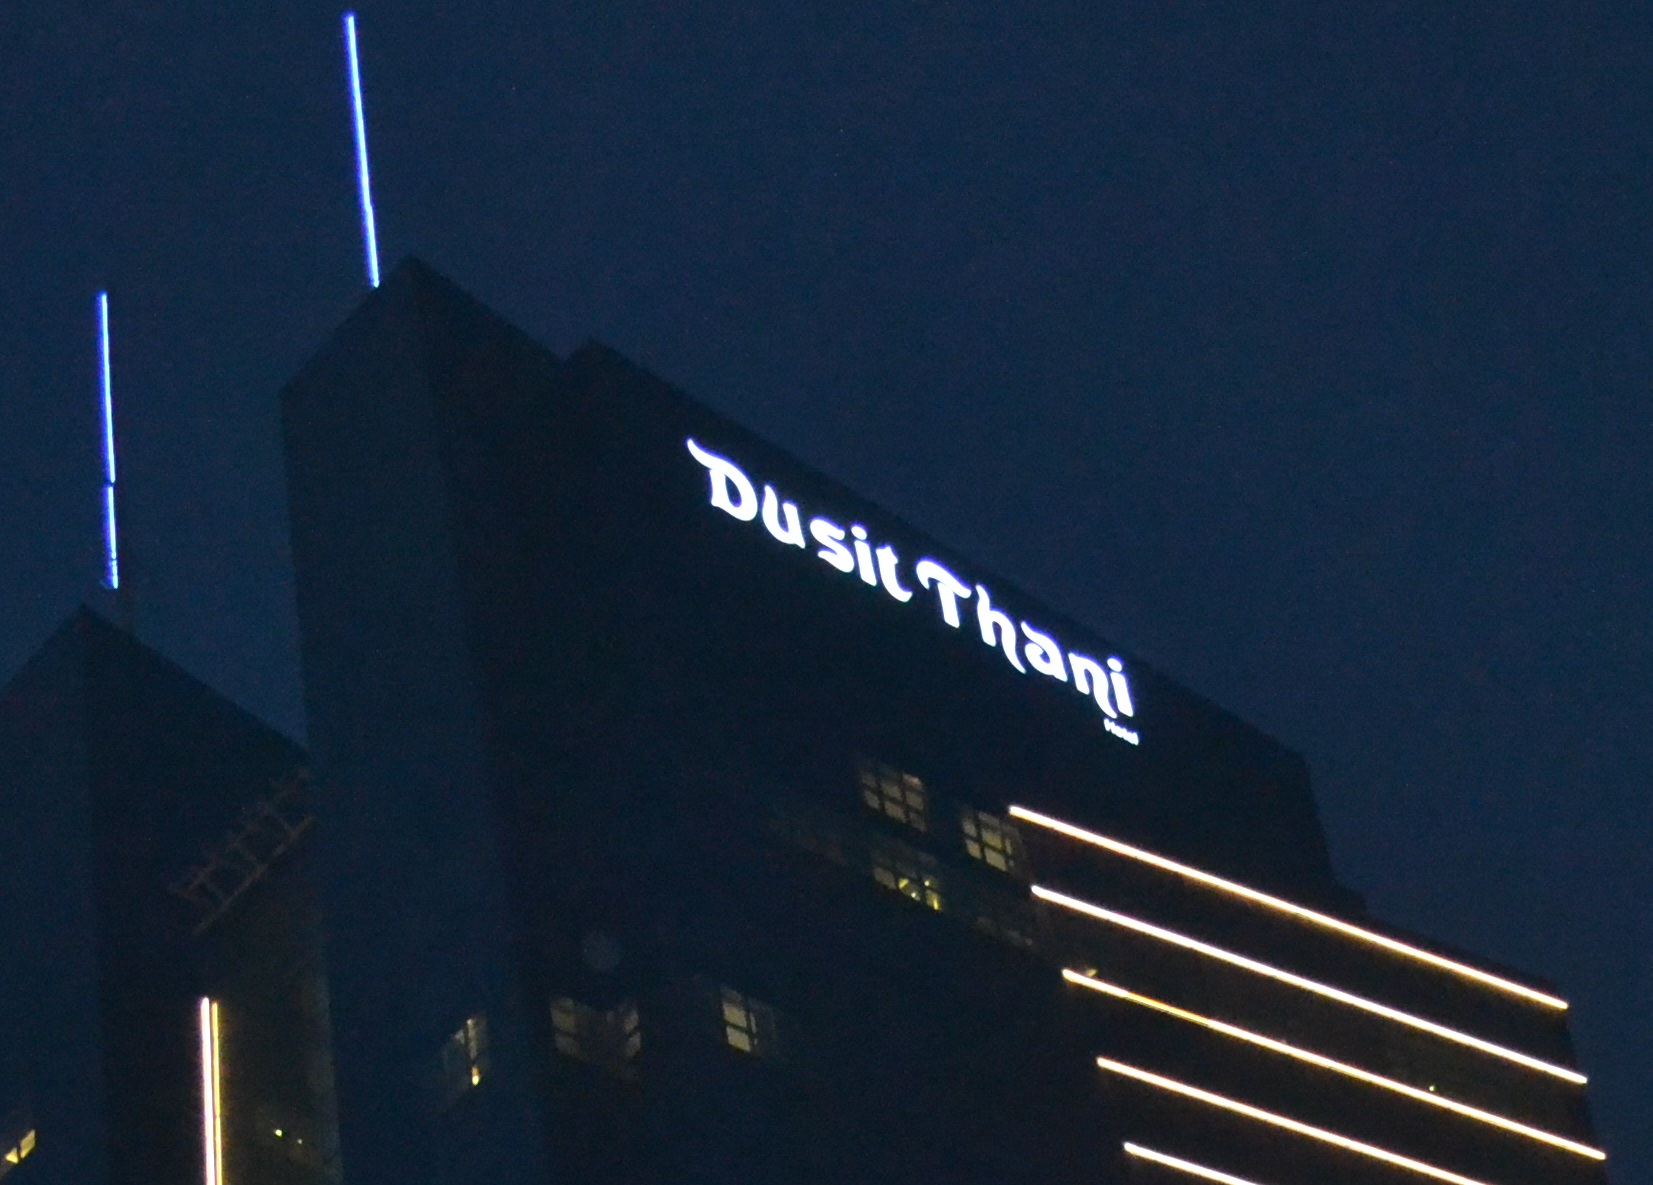 <h2>Dusit Thani - External Sign</h2><br/>